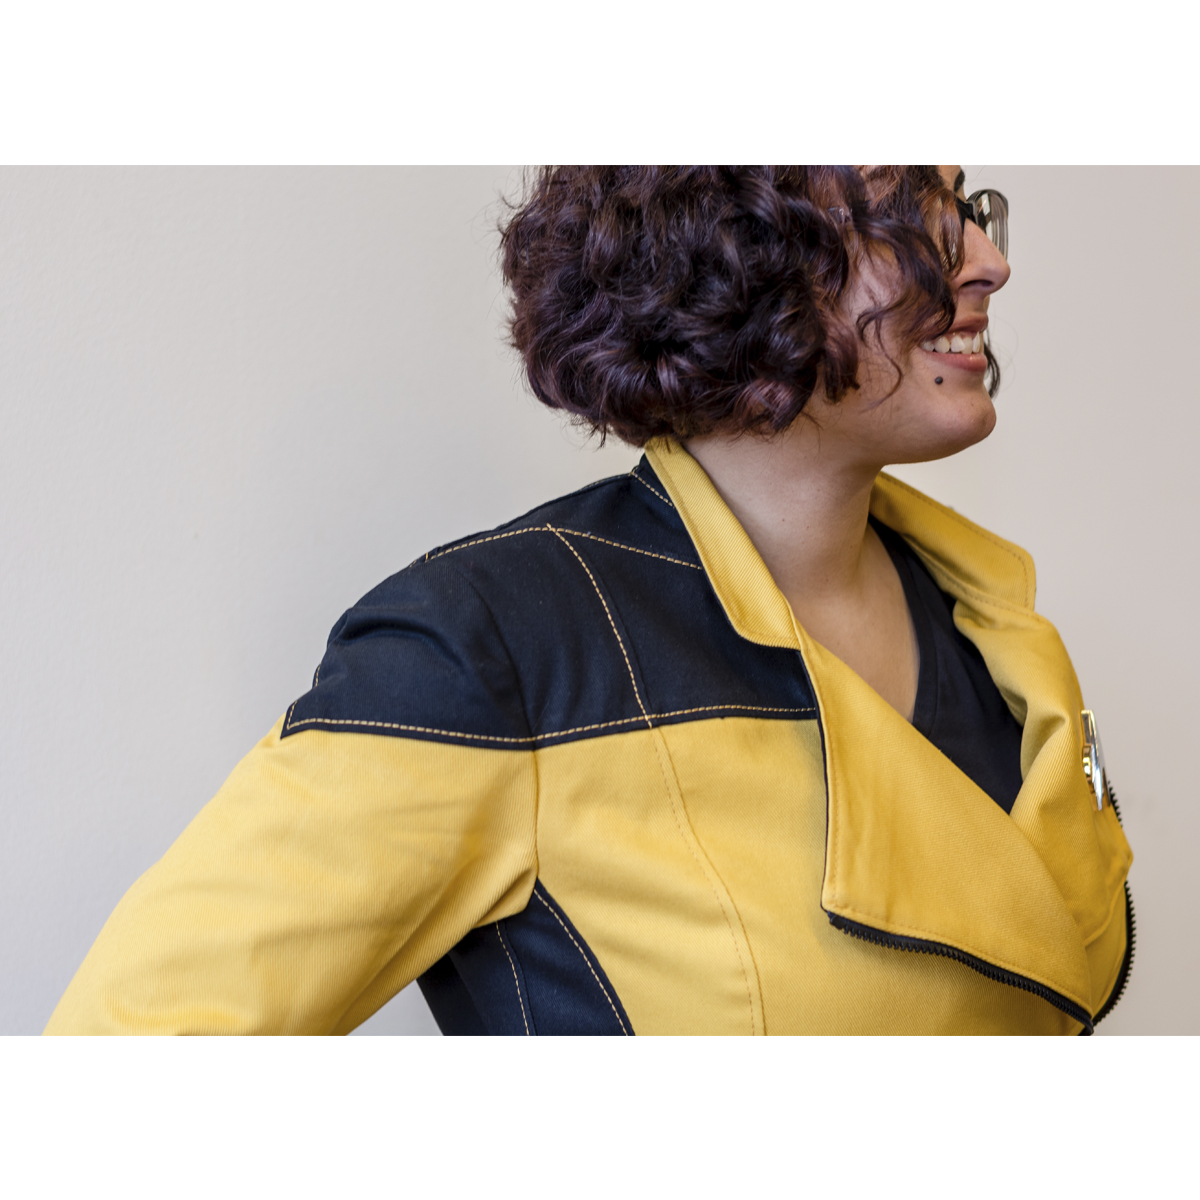 Starfleet 2364 Women's (Operations Gold)